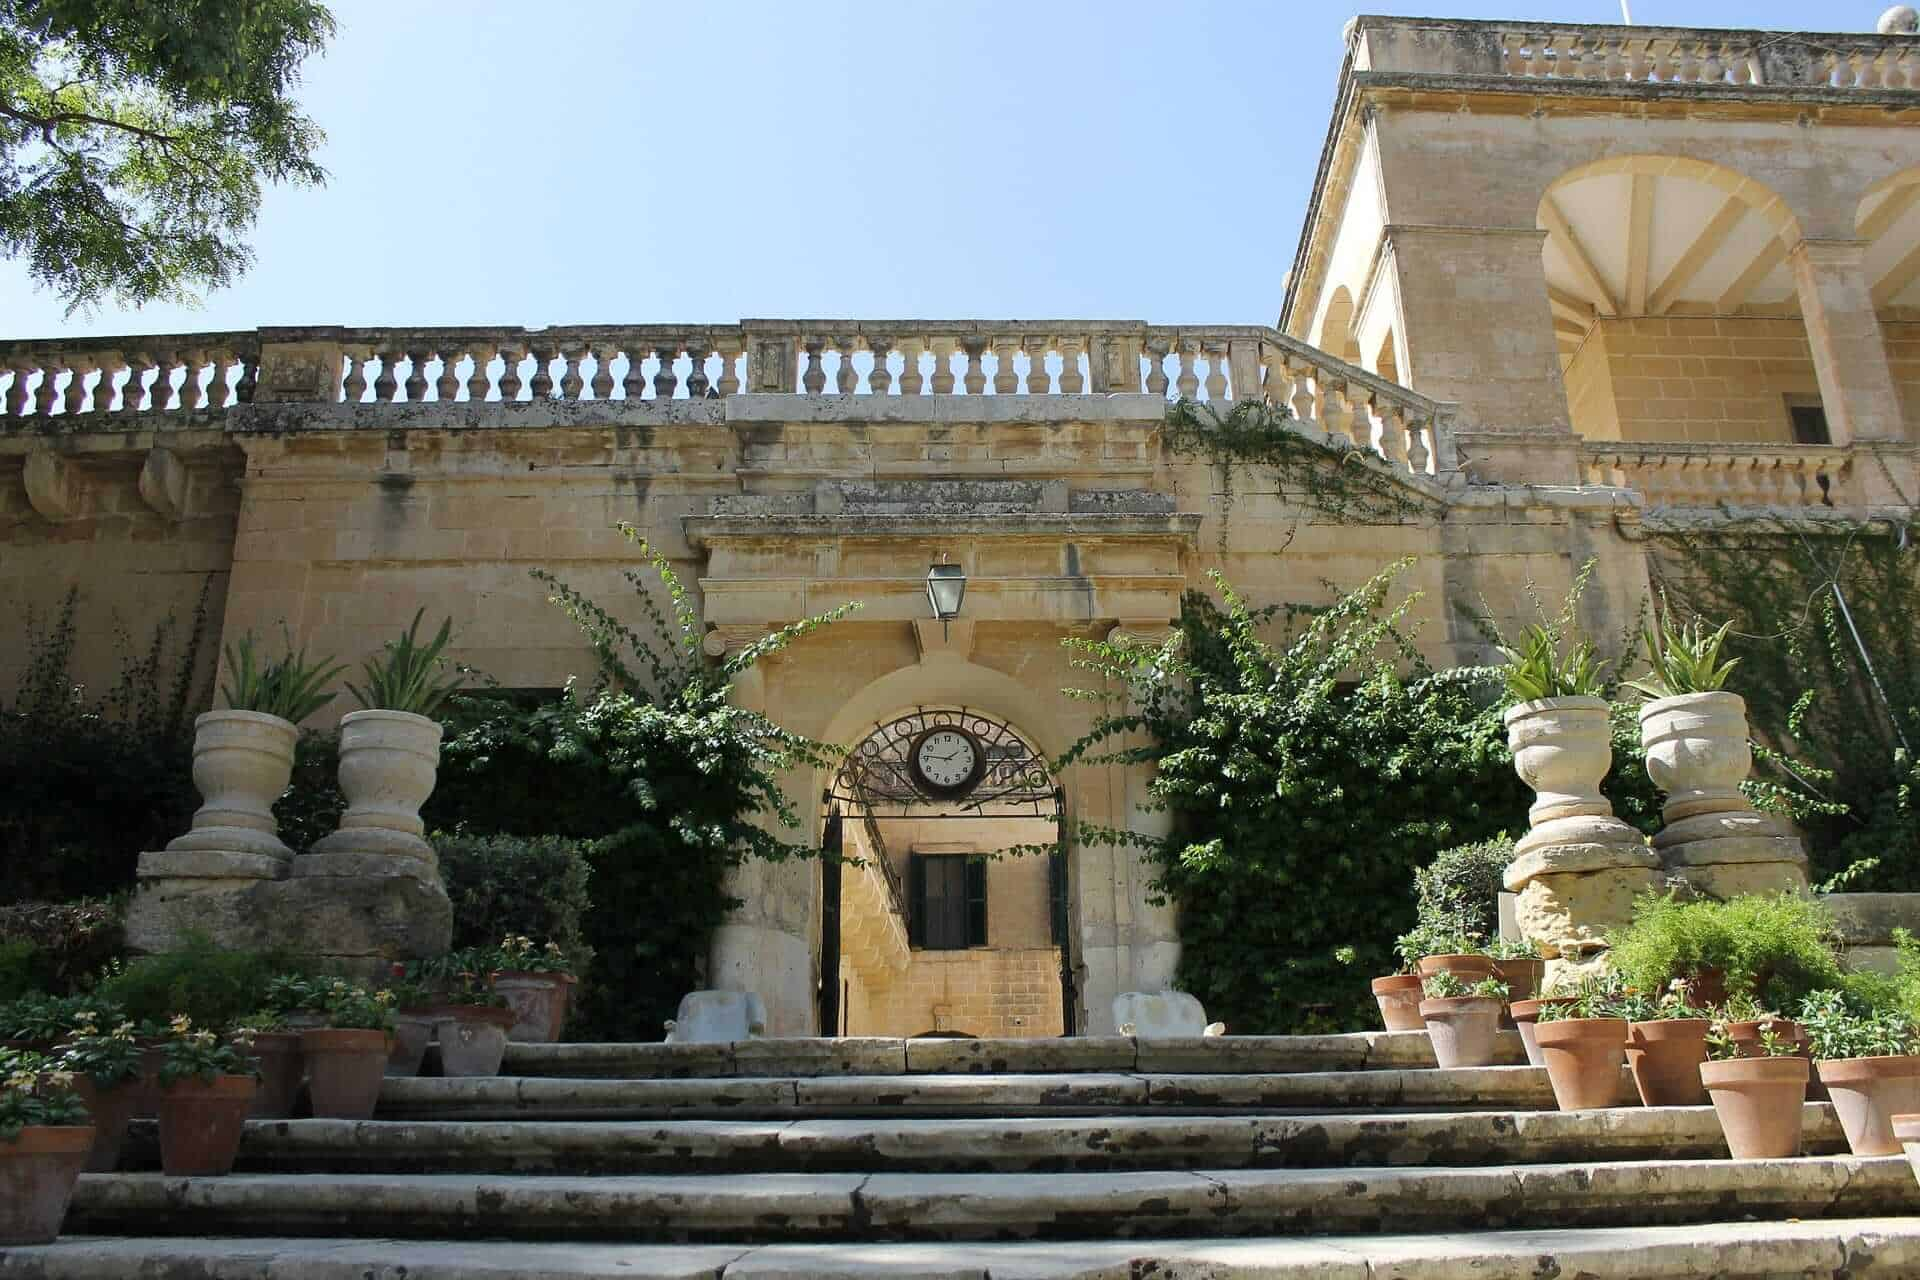 Game of Thrones Locations - San Anton Palace, Malta